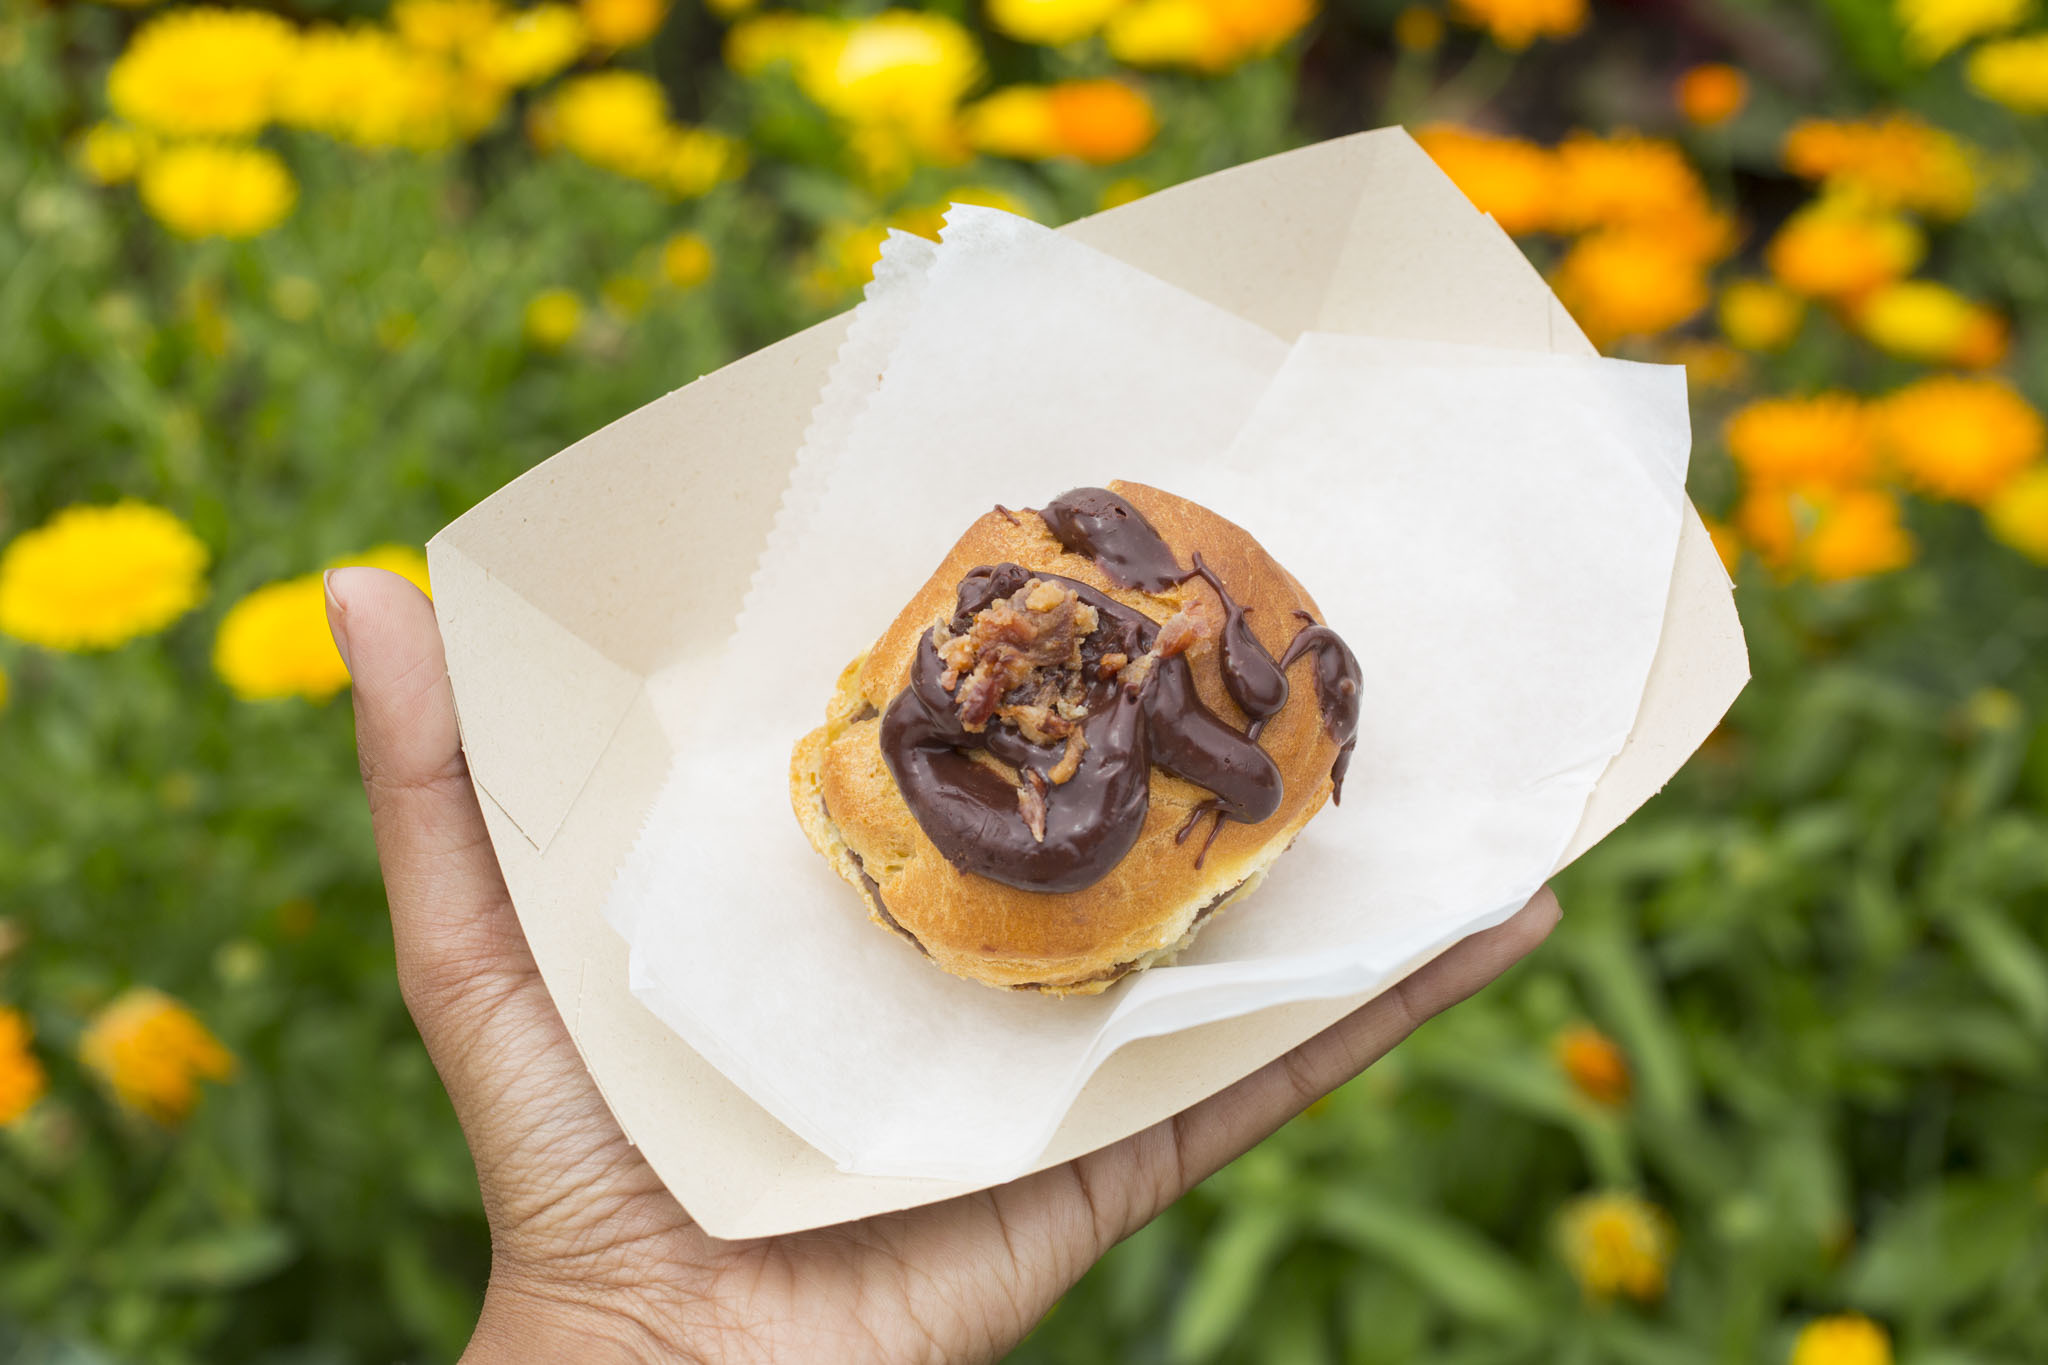 Chocolate-Covered Bacon Puff from Puffs of Doom